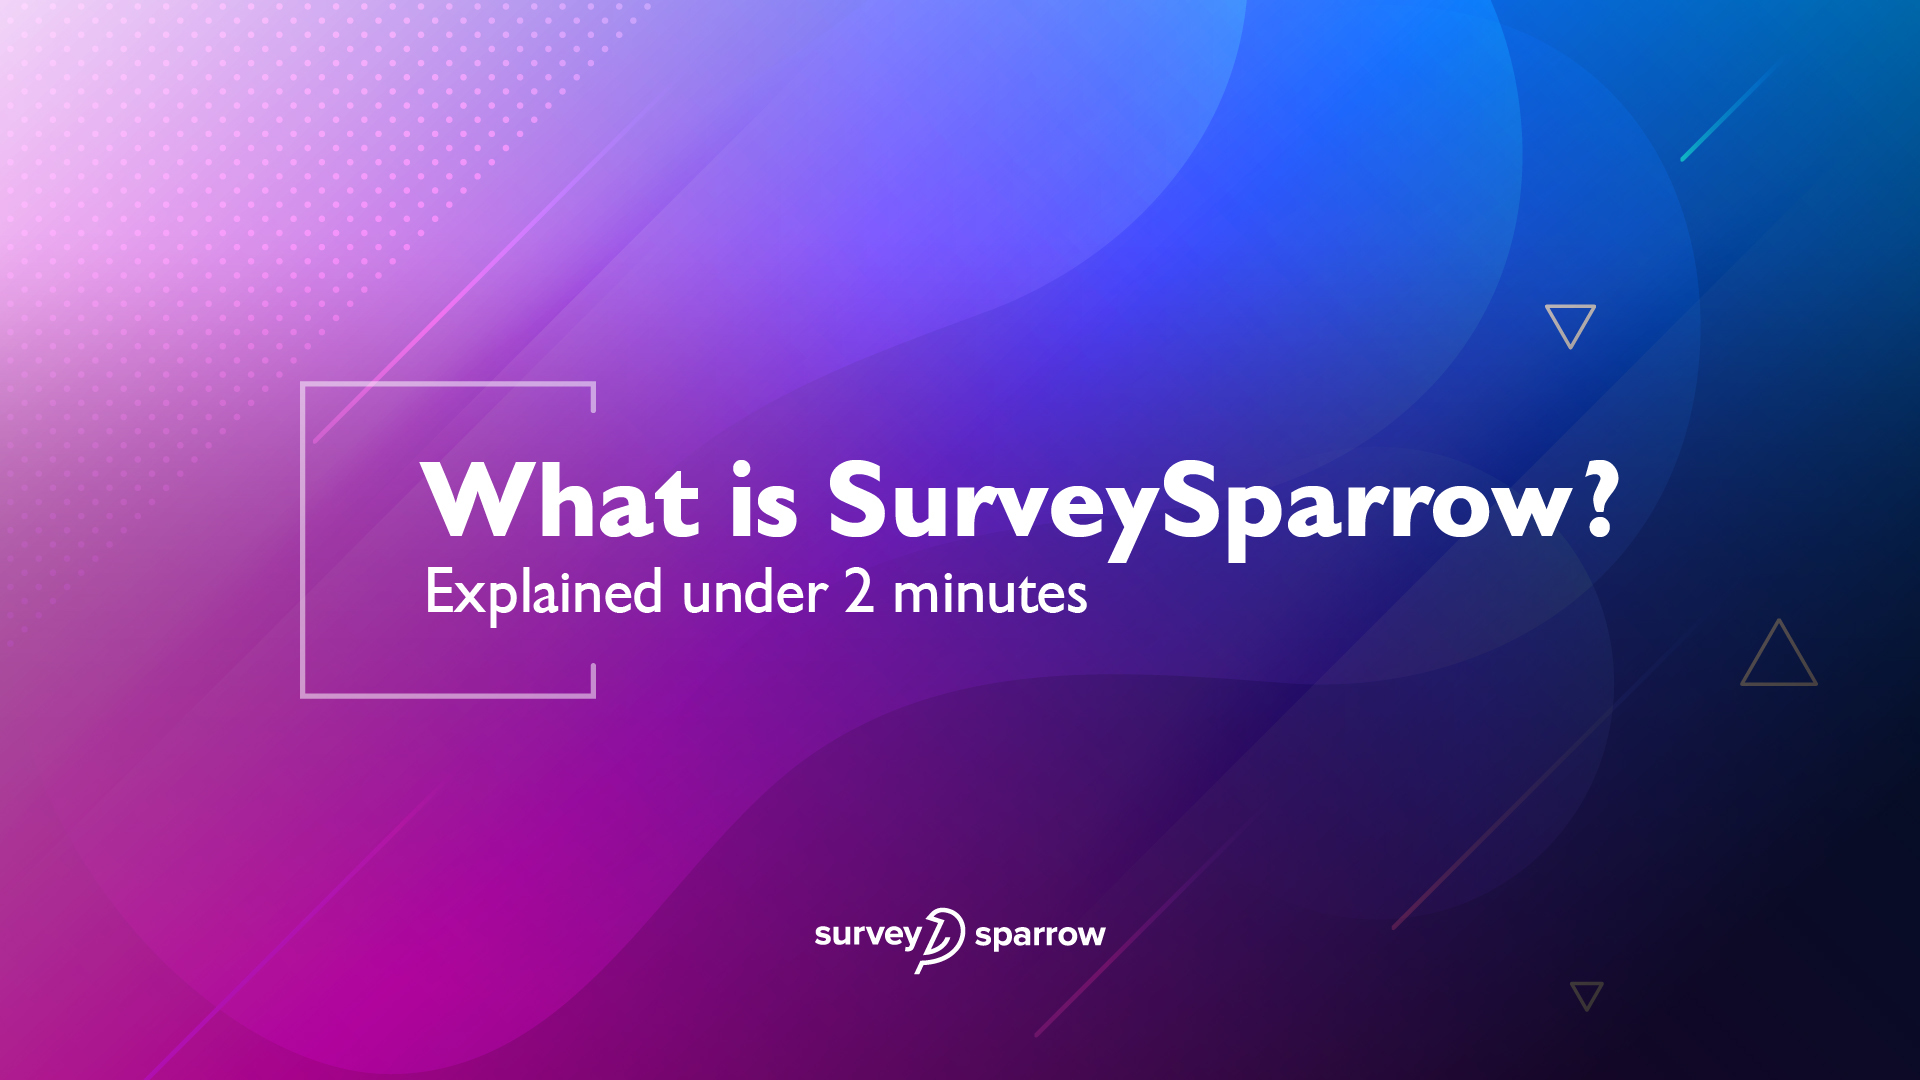 Create better experiences with SurveySparrow, an omnichannel experience management platform.